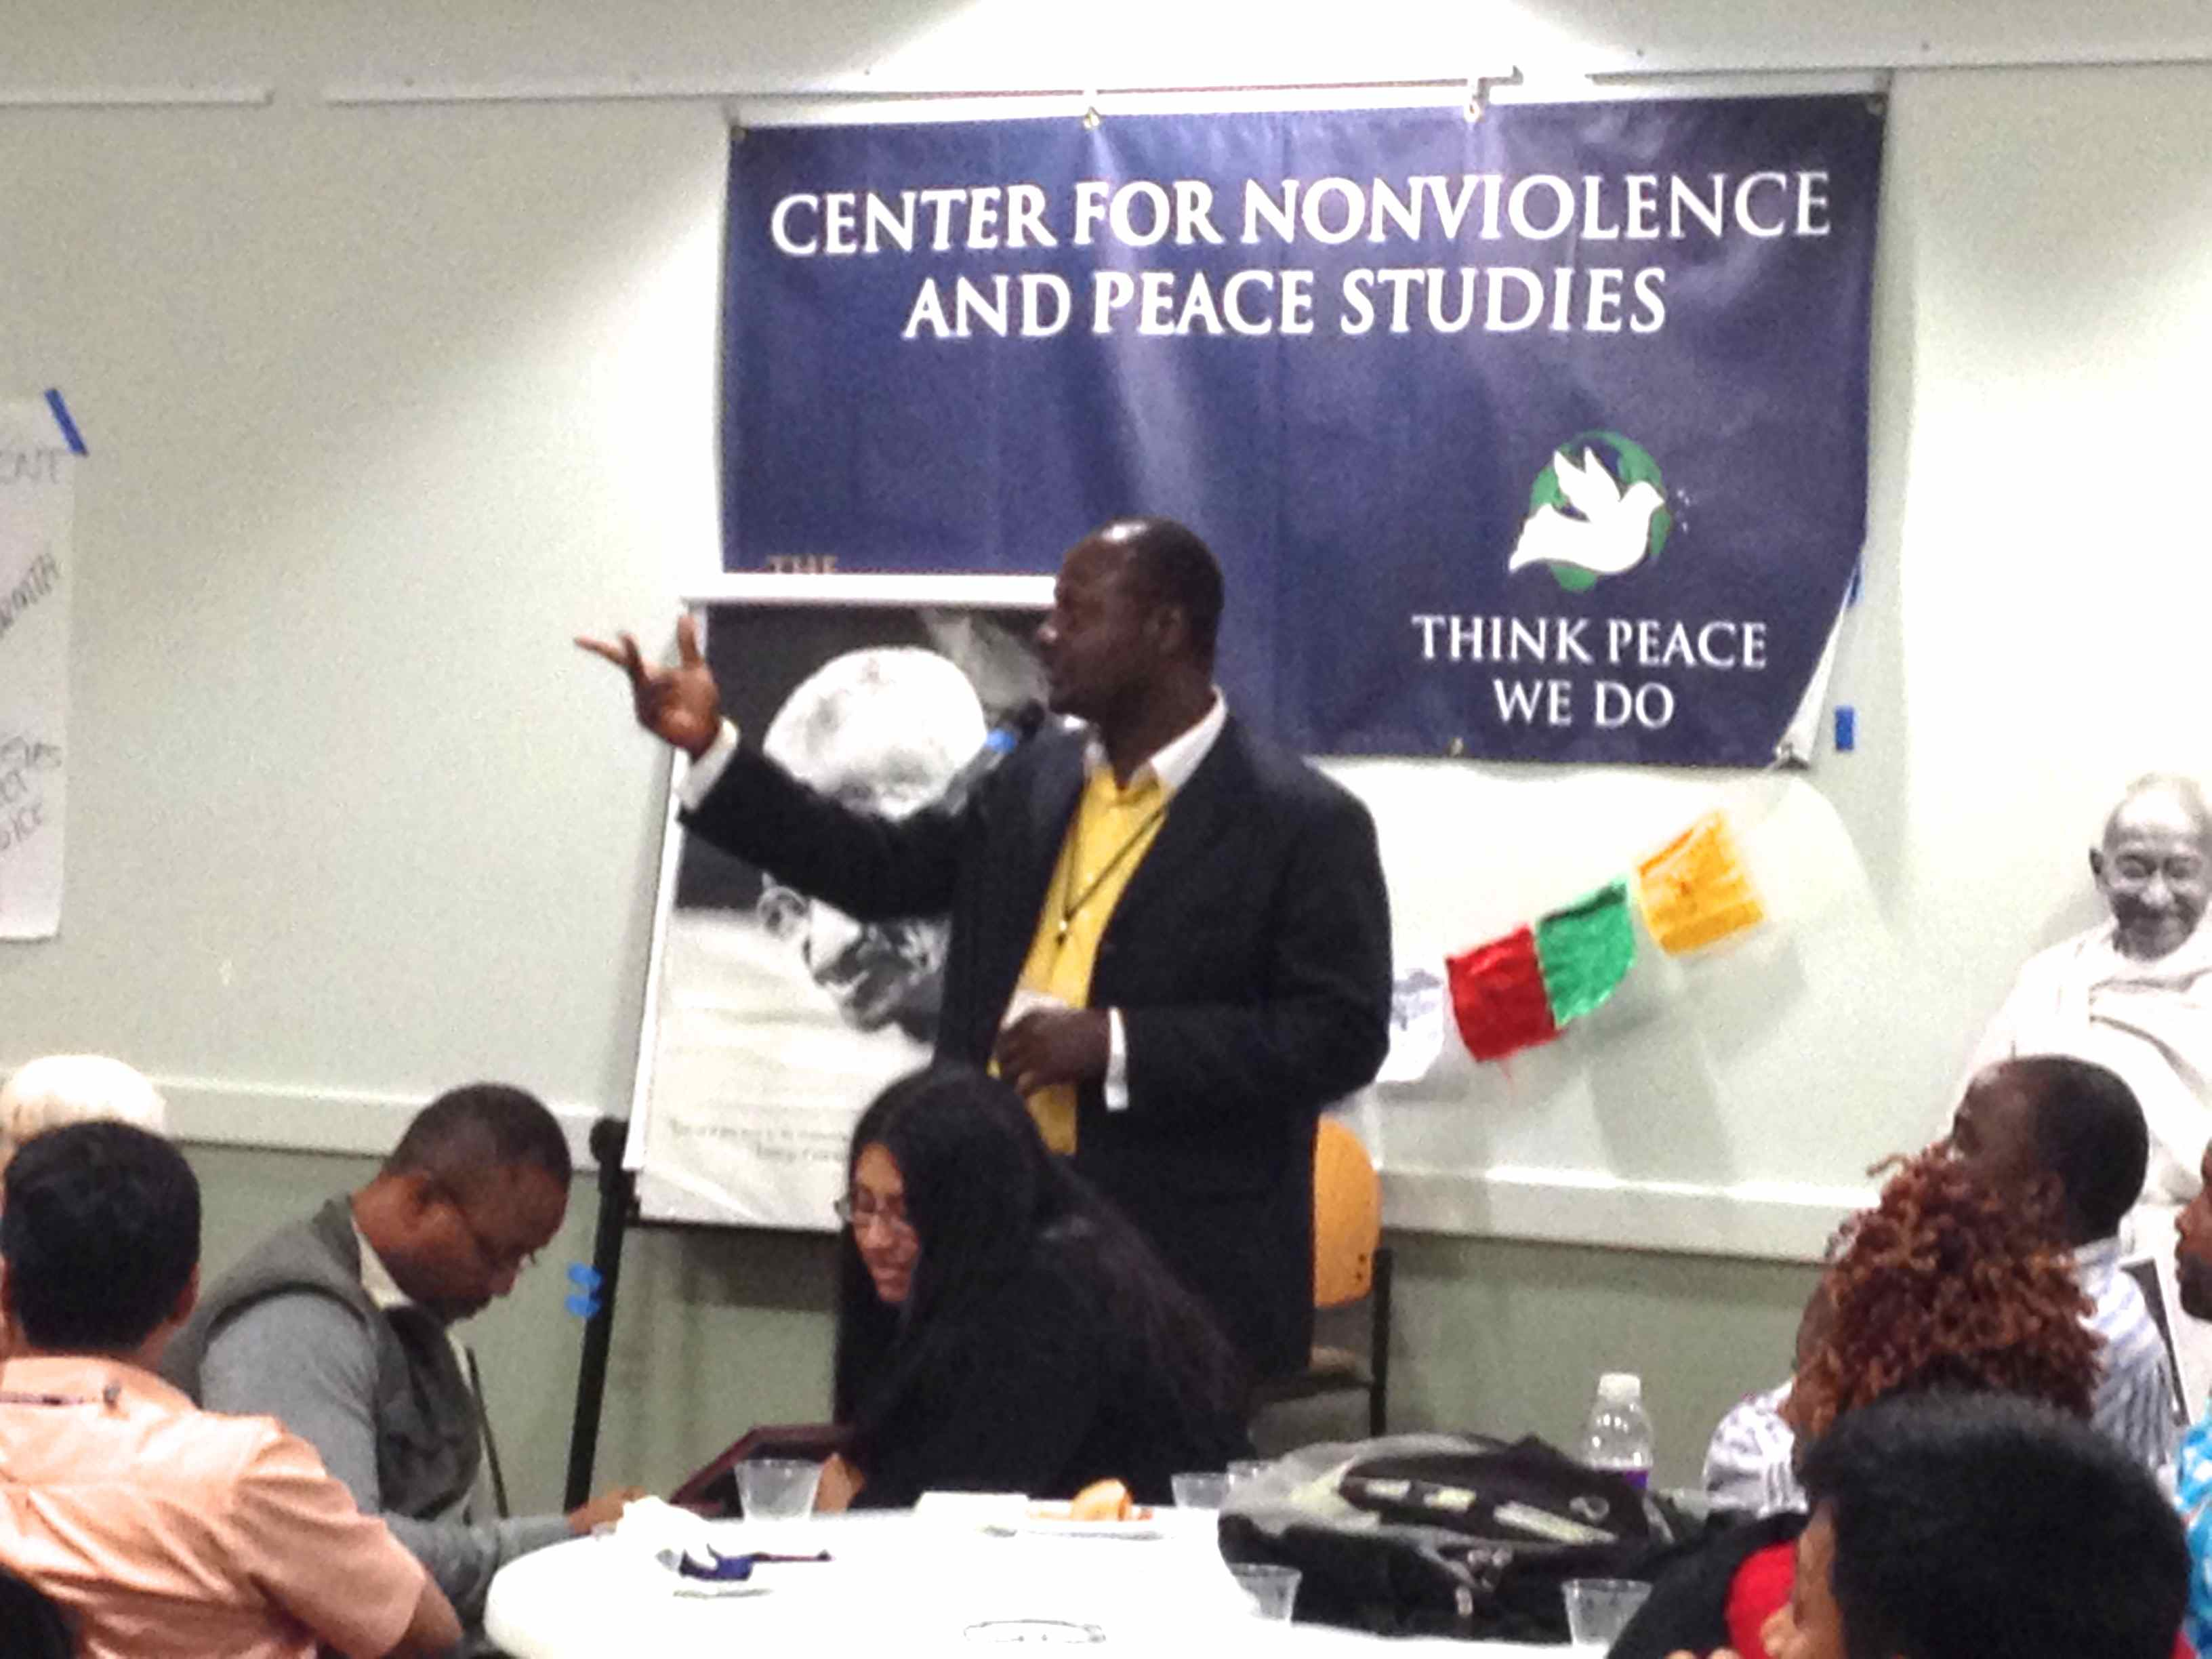 Small essay on world peace and nonviolence